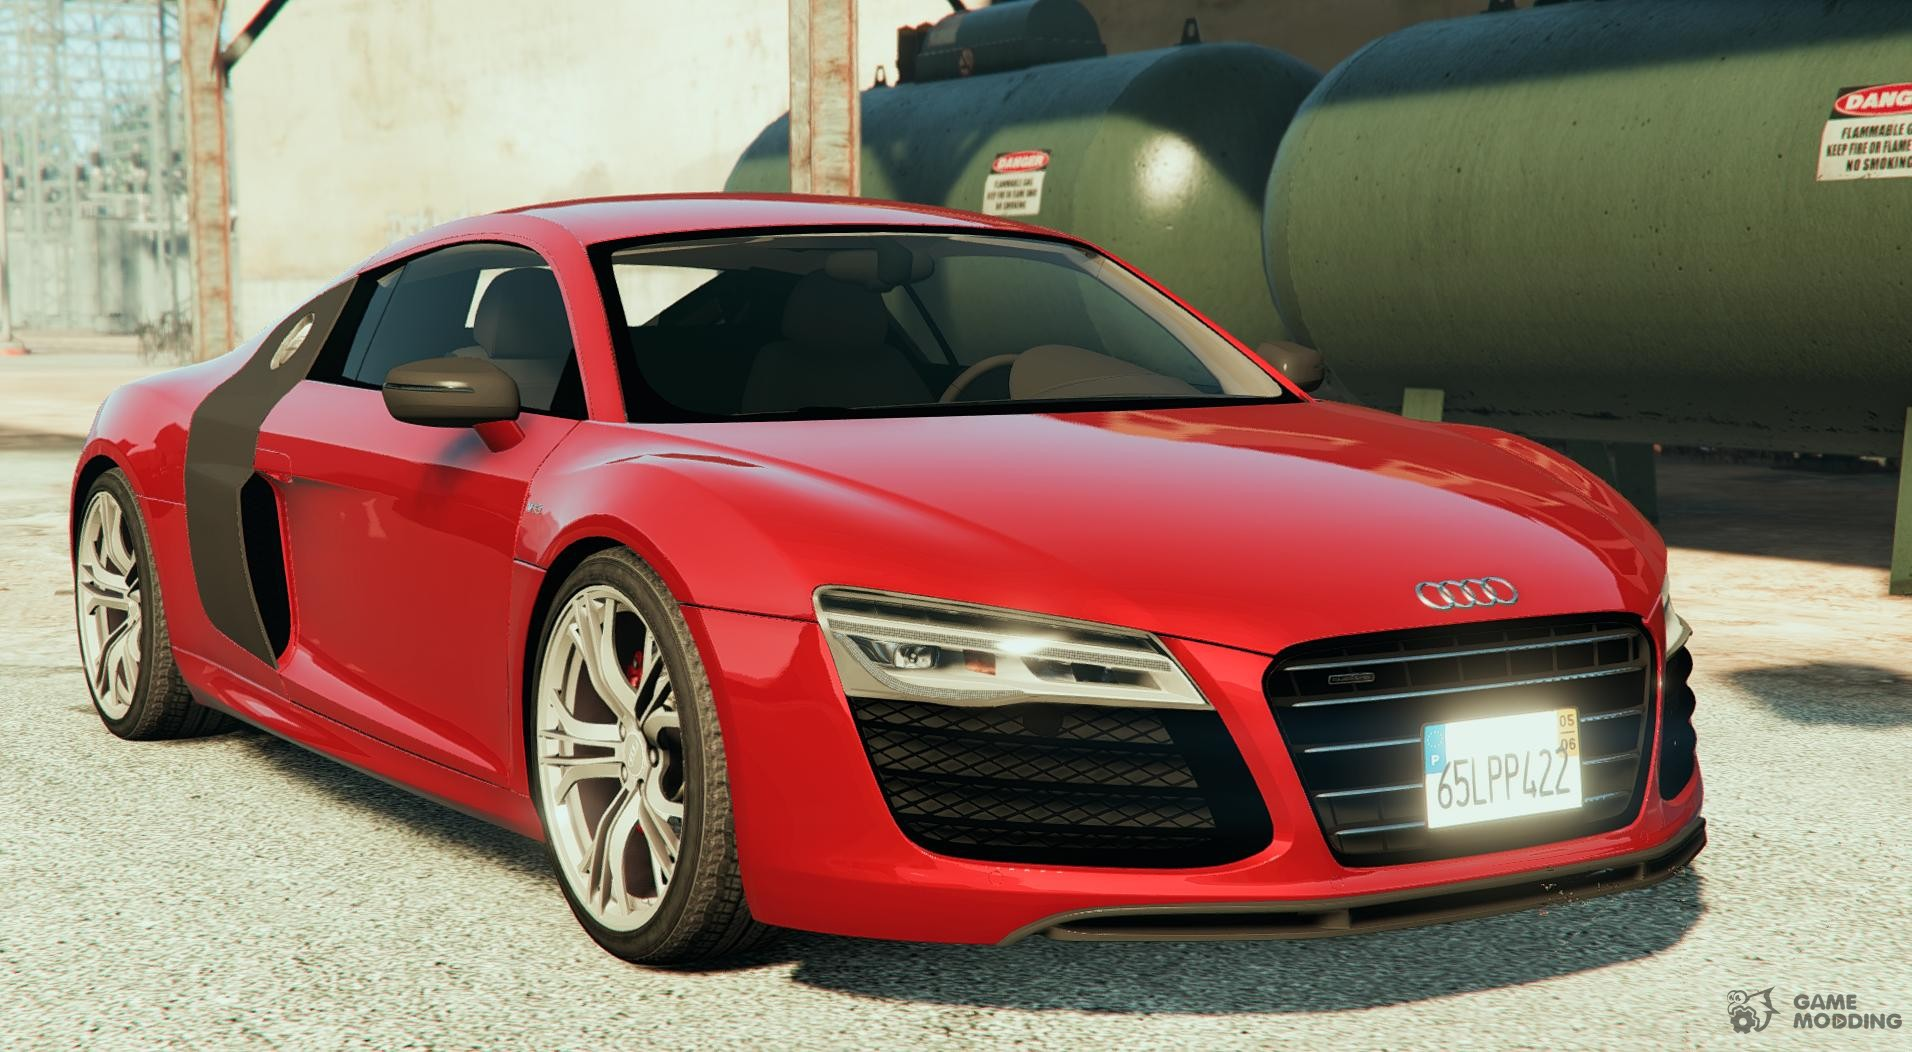 Audi R8 LMS Street Car for GTA 5